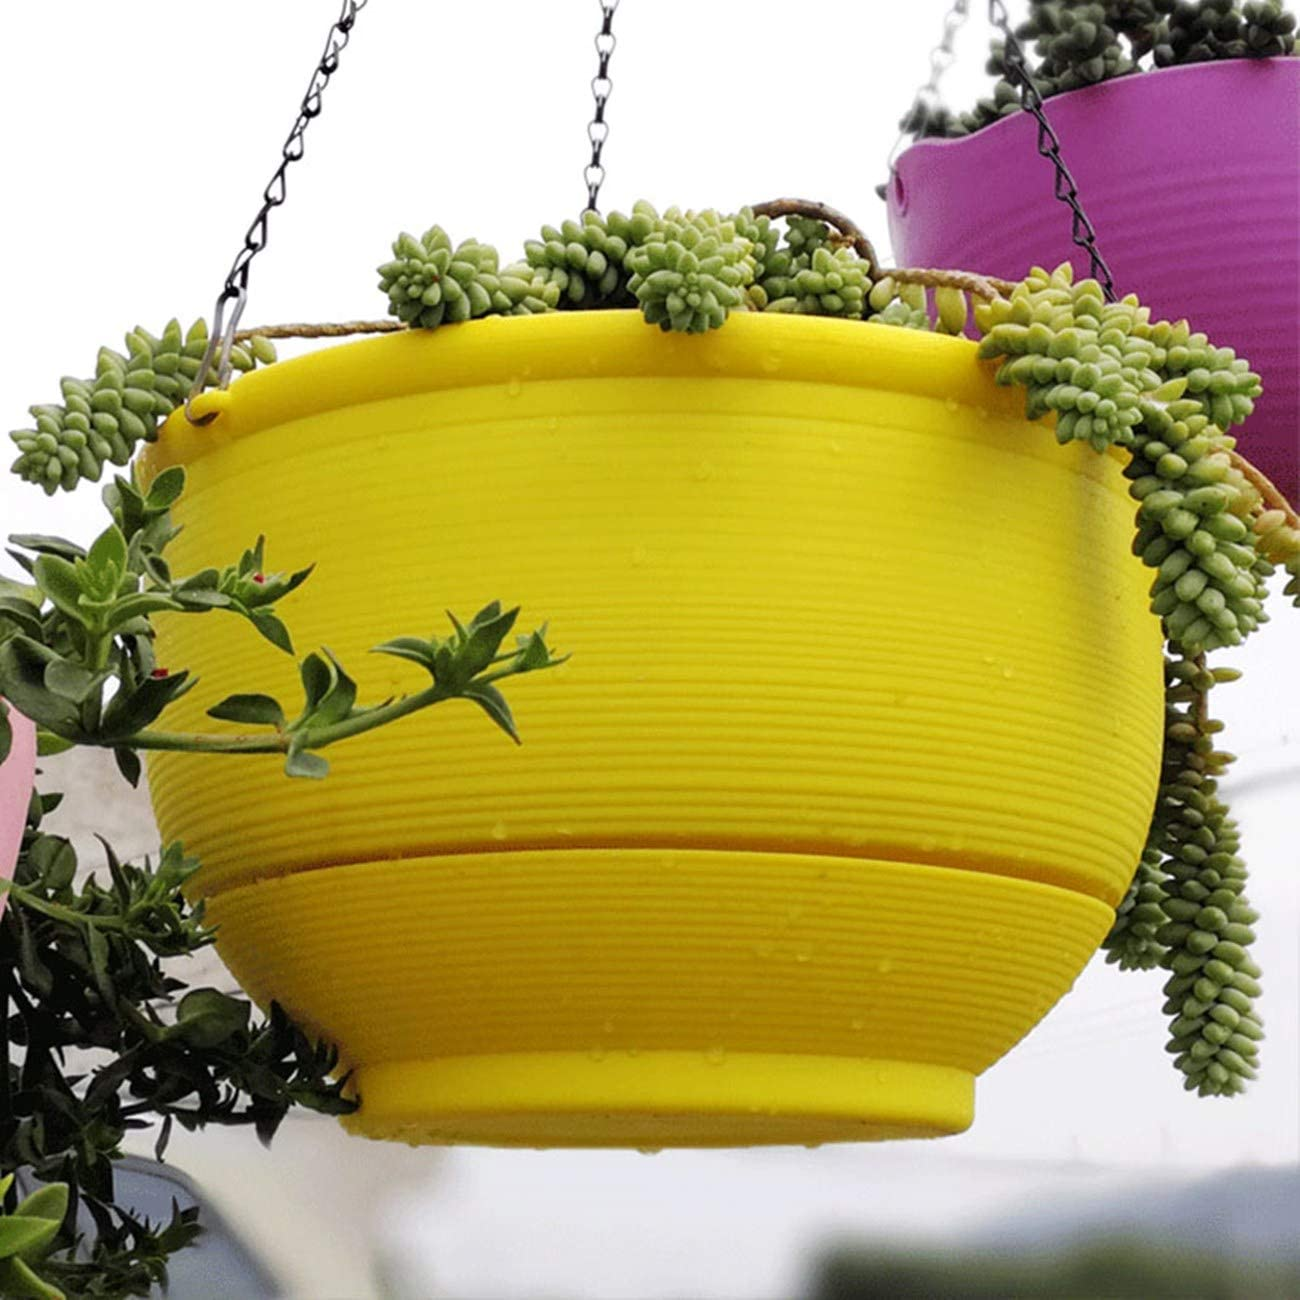 Homeleaf 2 Bombing free shipping Pack Plastic Hanging Detachable Challenge the lowest price Basket with B Planter